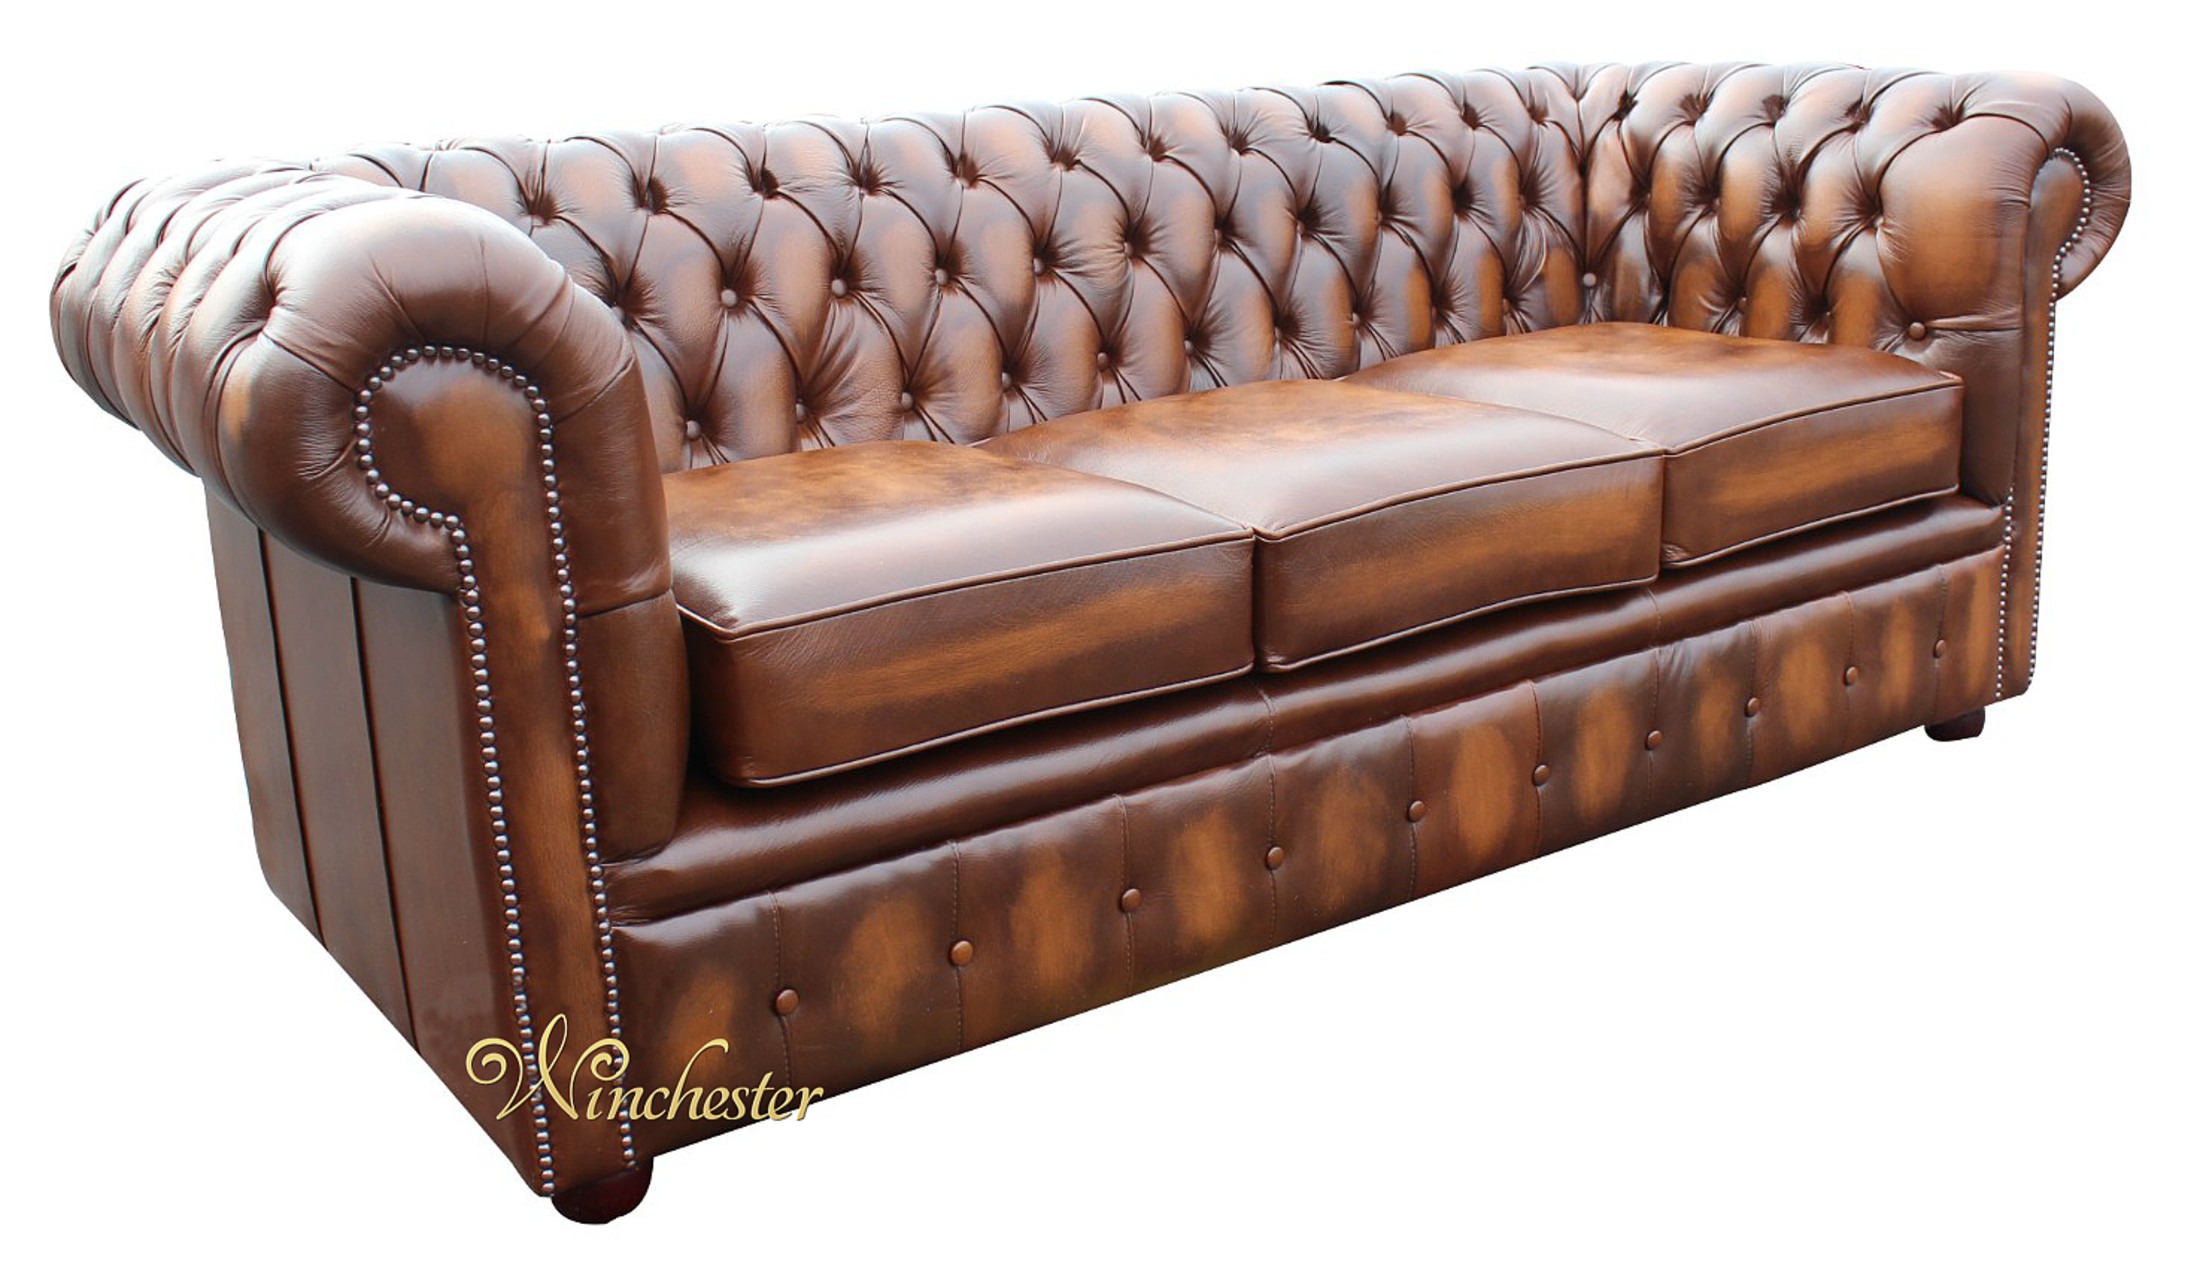 Chesterfield 3 Seater Sofa Settee Antique Tan Leather 2 Wc